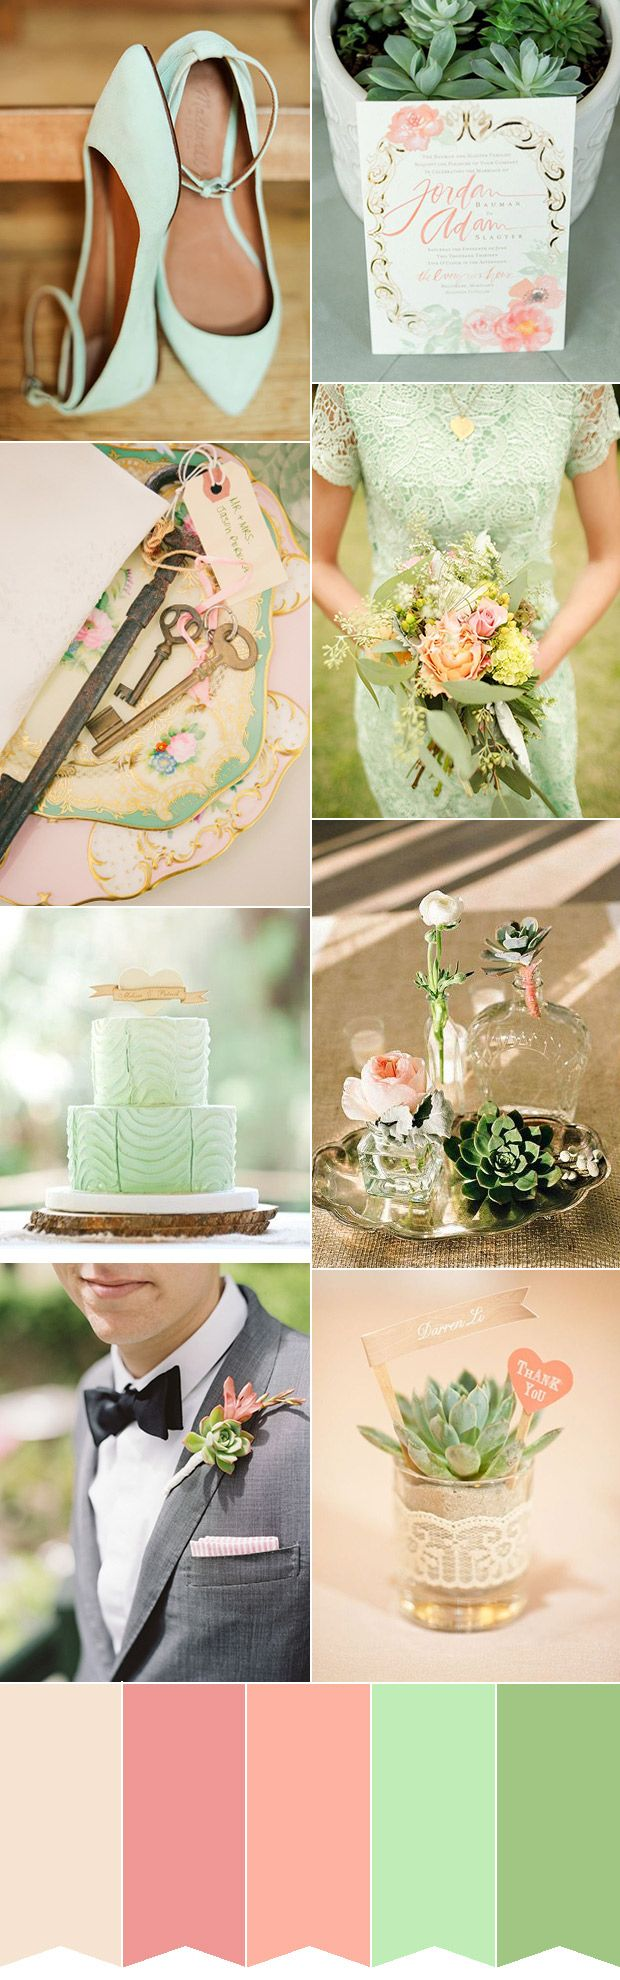 Gorgeous Fresh Mint and Pink Inspiration Colour Palette   www.onefabday.com